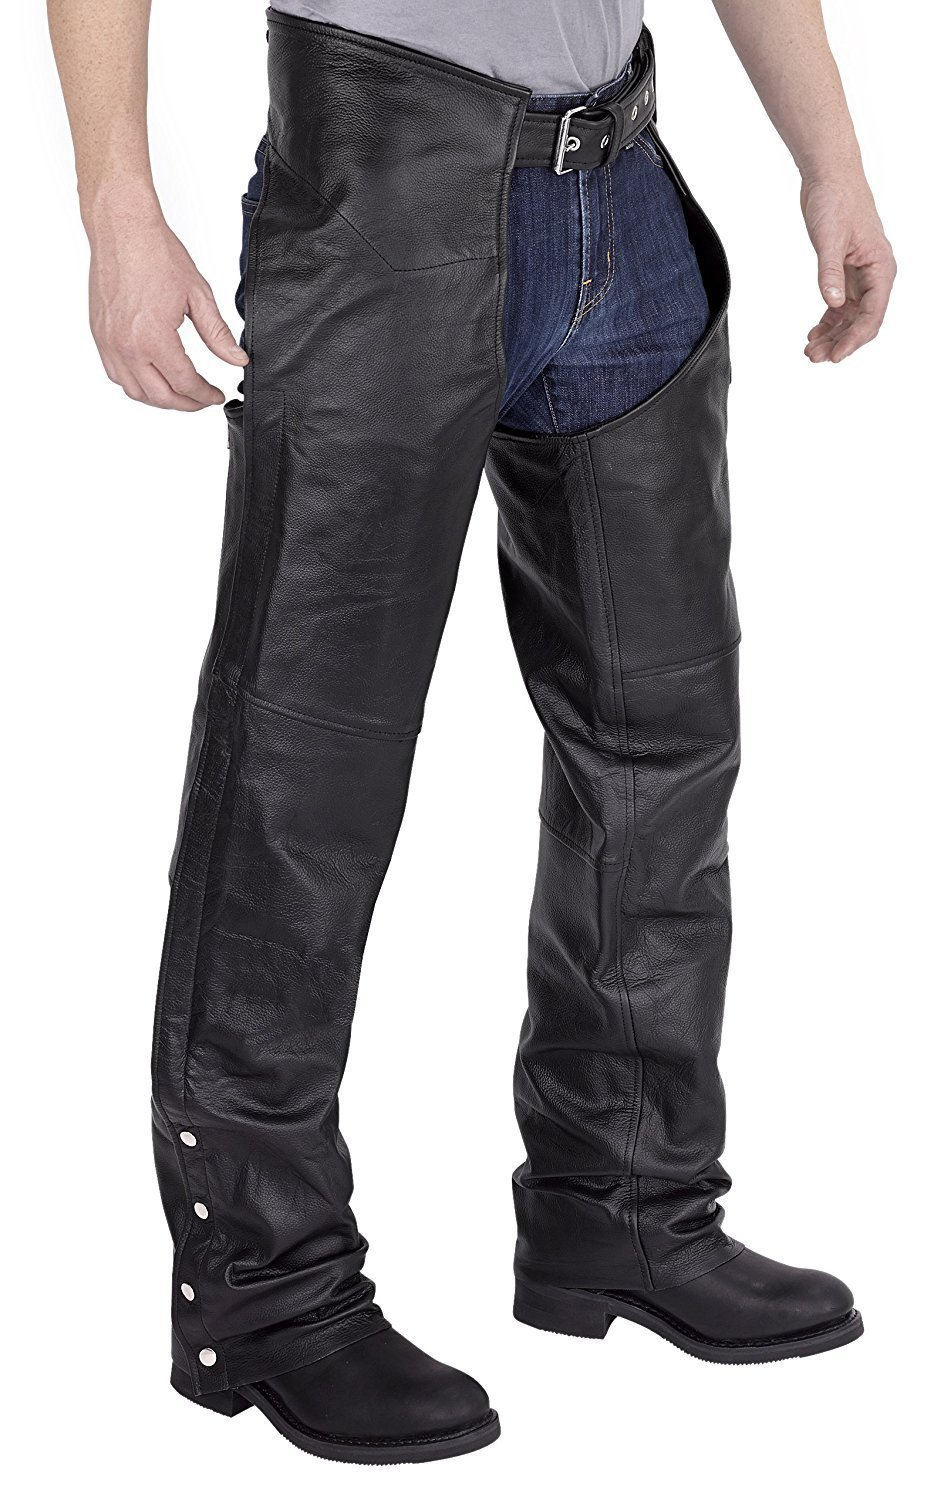 Viking Cycle Leather Chaps - Plain Motorcycle Leather Chaps for Men product  image 7655af9b6